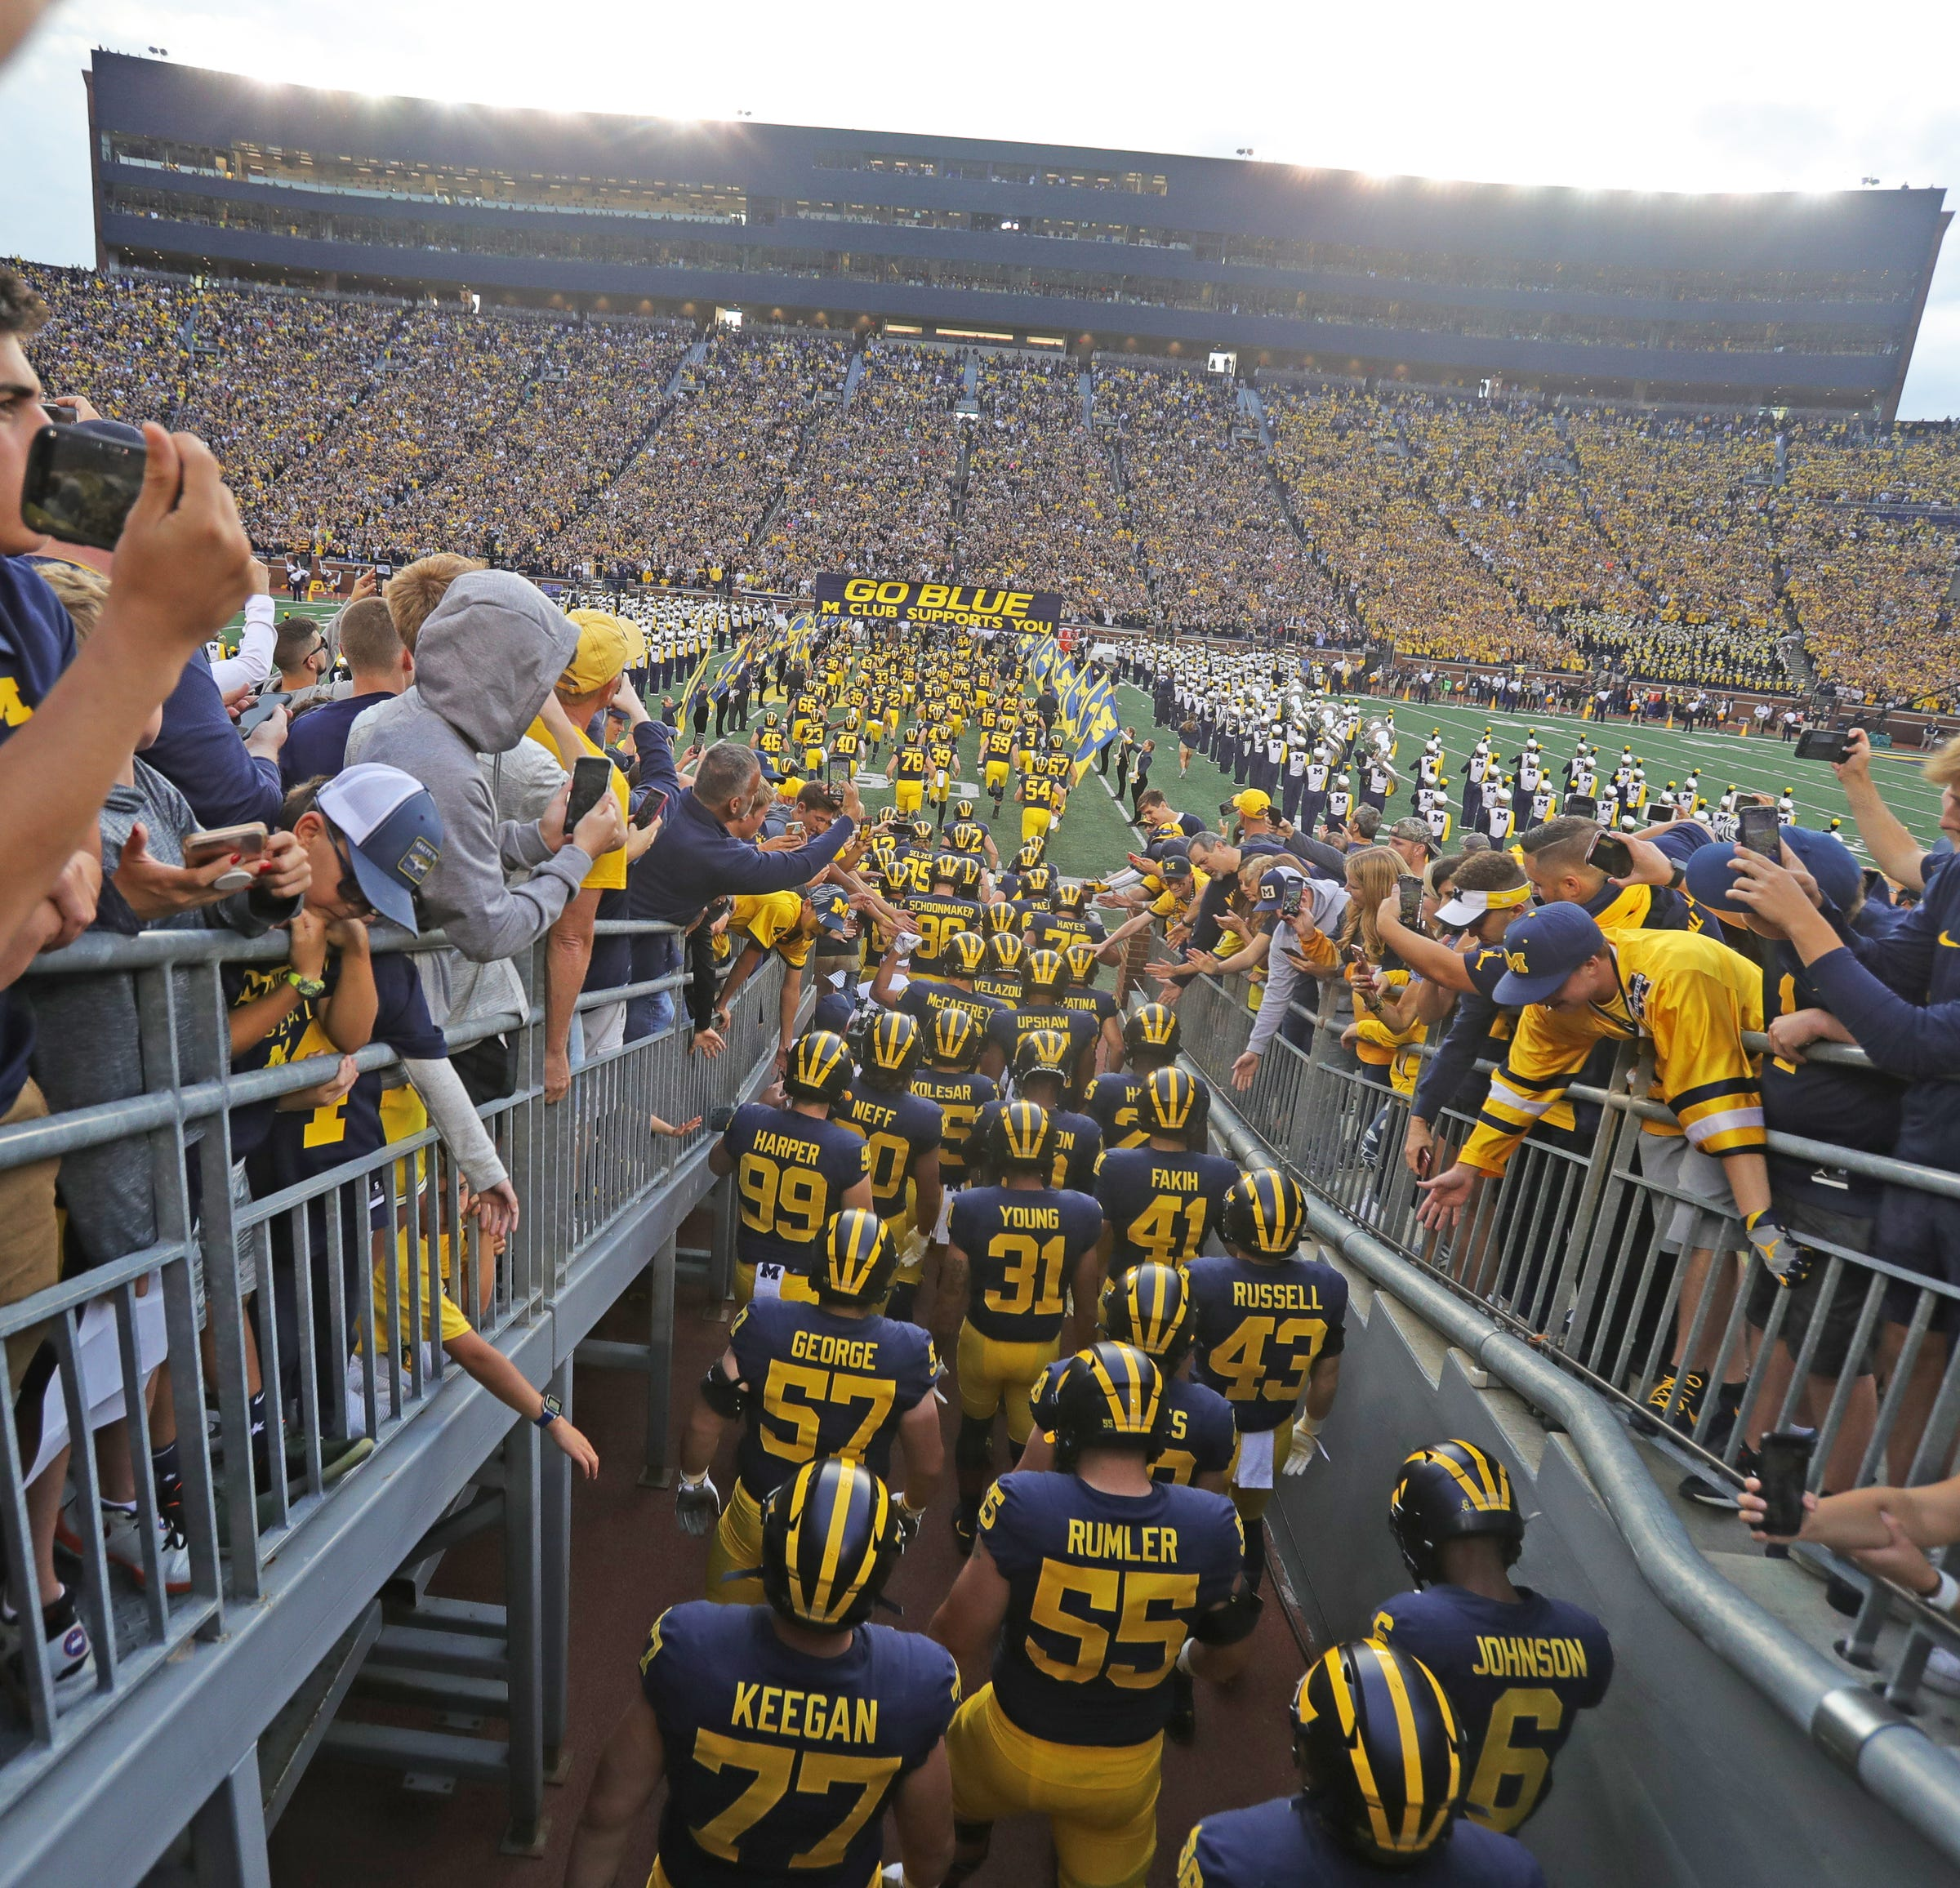 graphic regarding Michigan Football Schedule Printable named Michigan Wolverines soccer plan 2019: Occasions, Television set, success